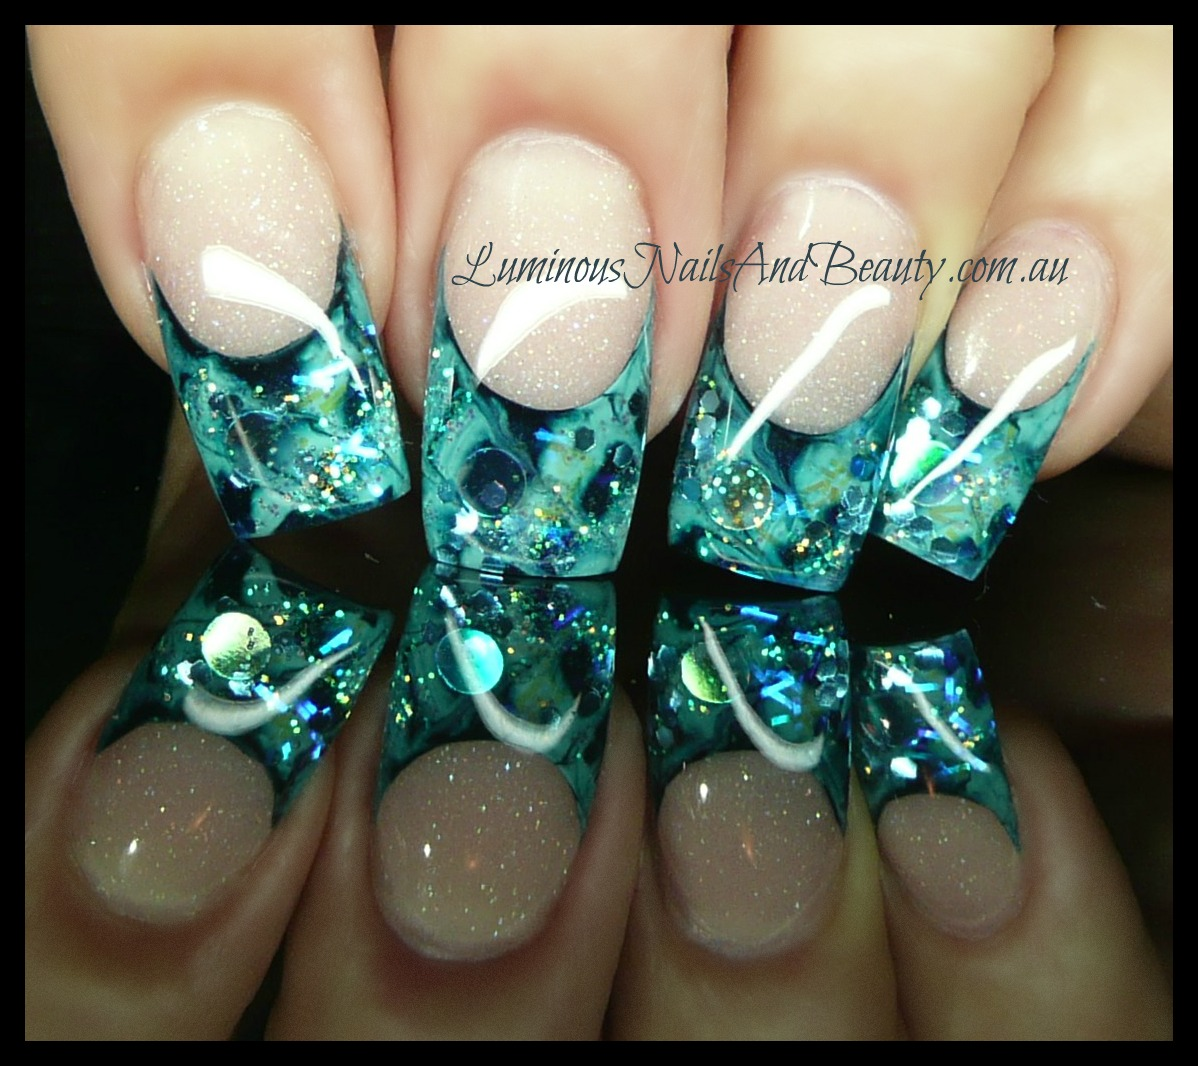 The Appealing Glittery gel nail designs Picture